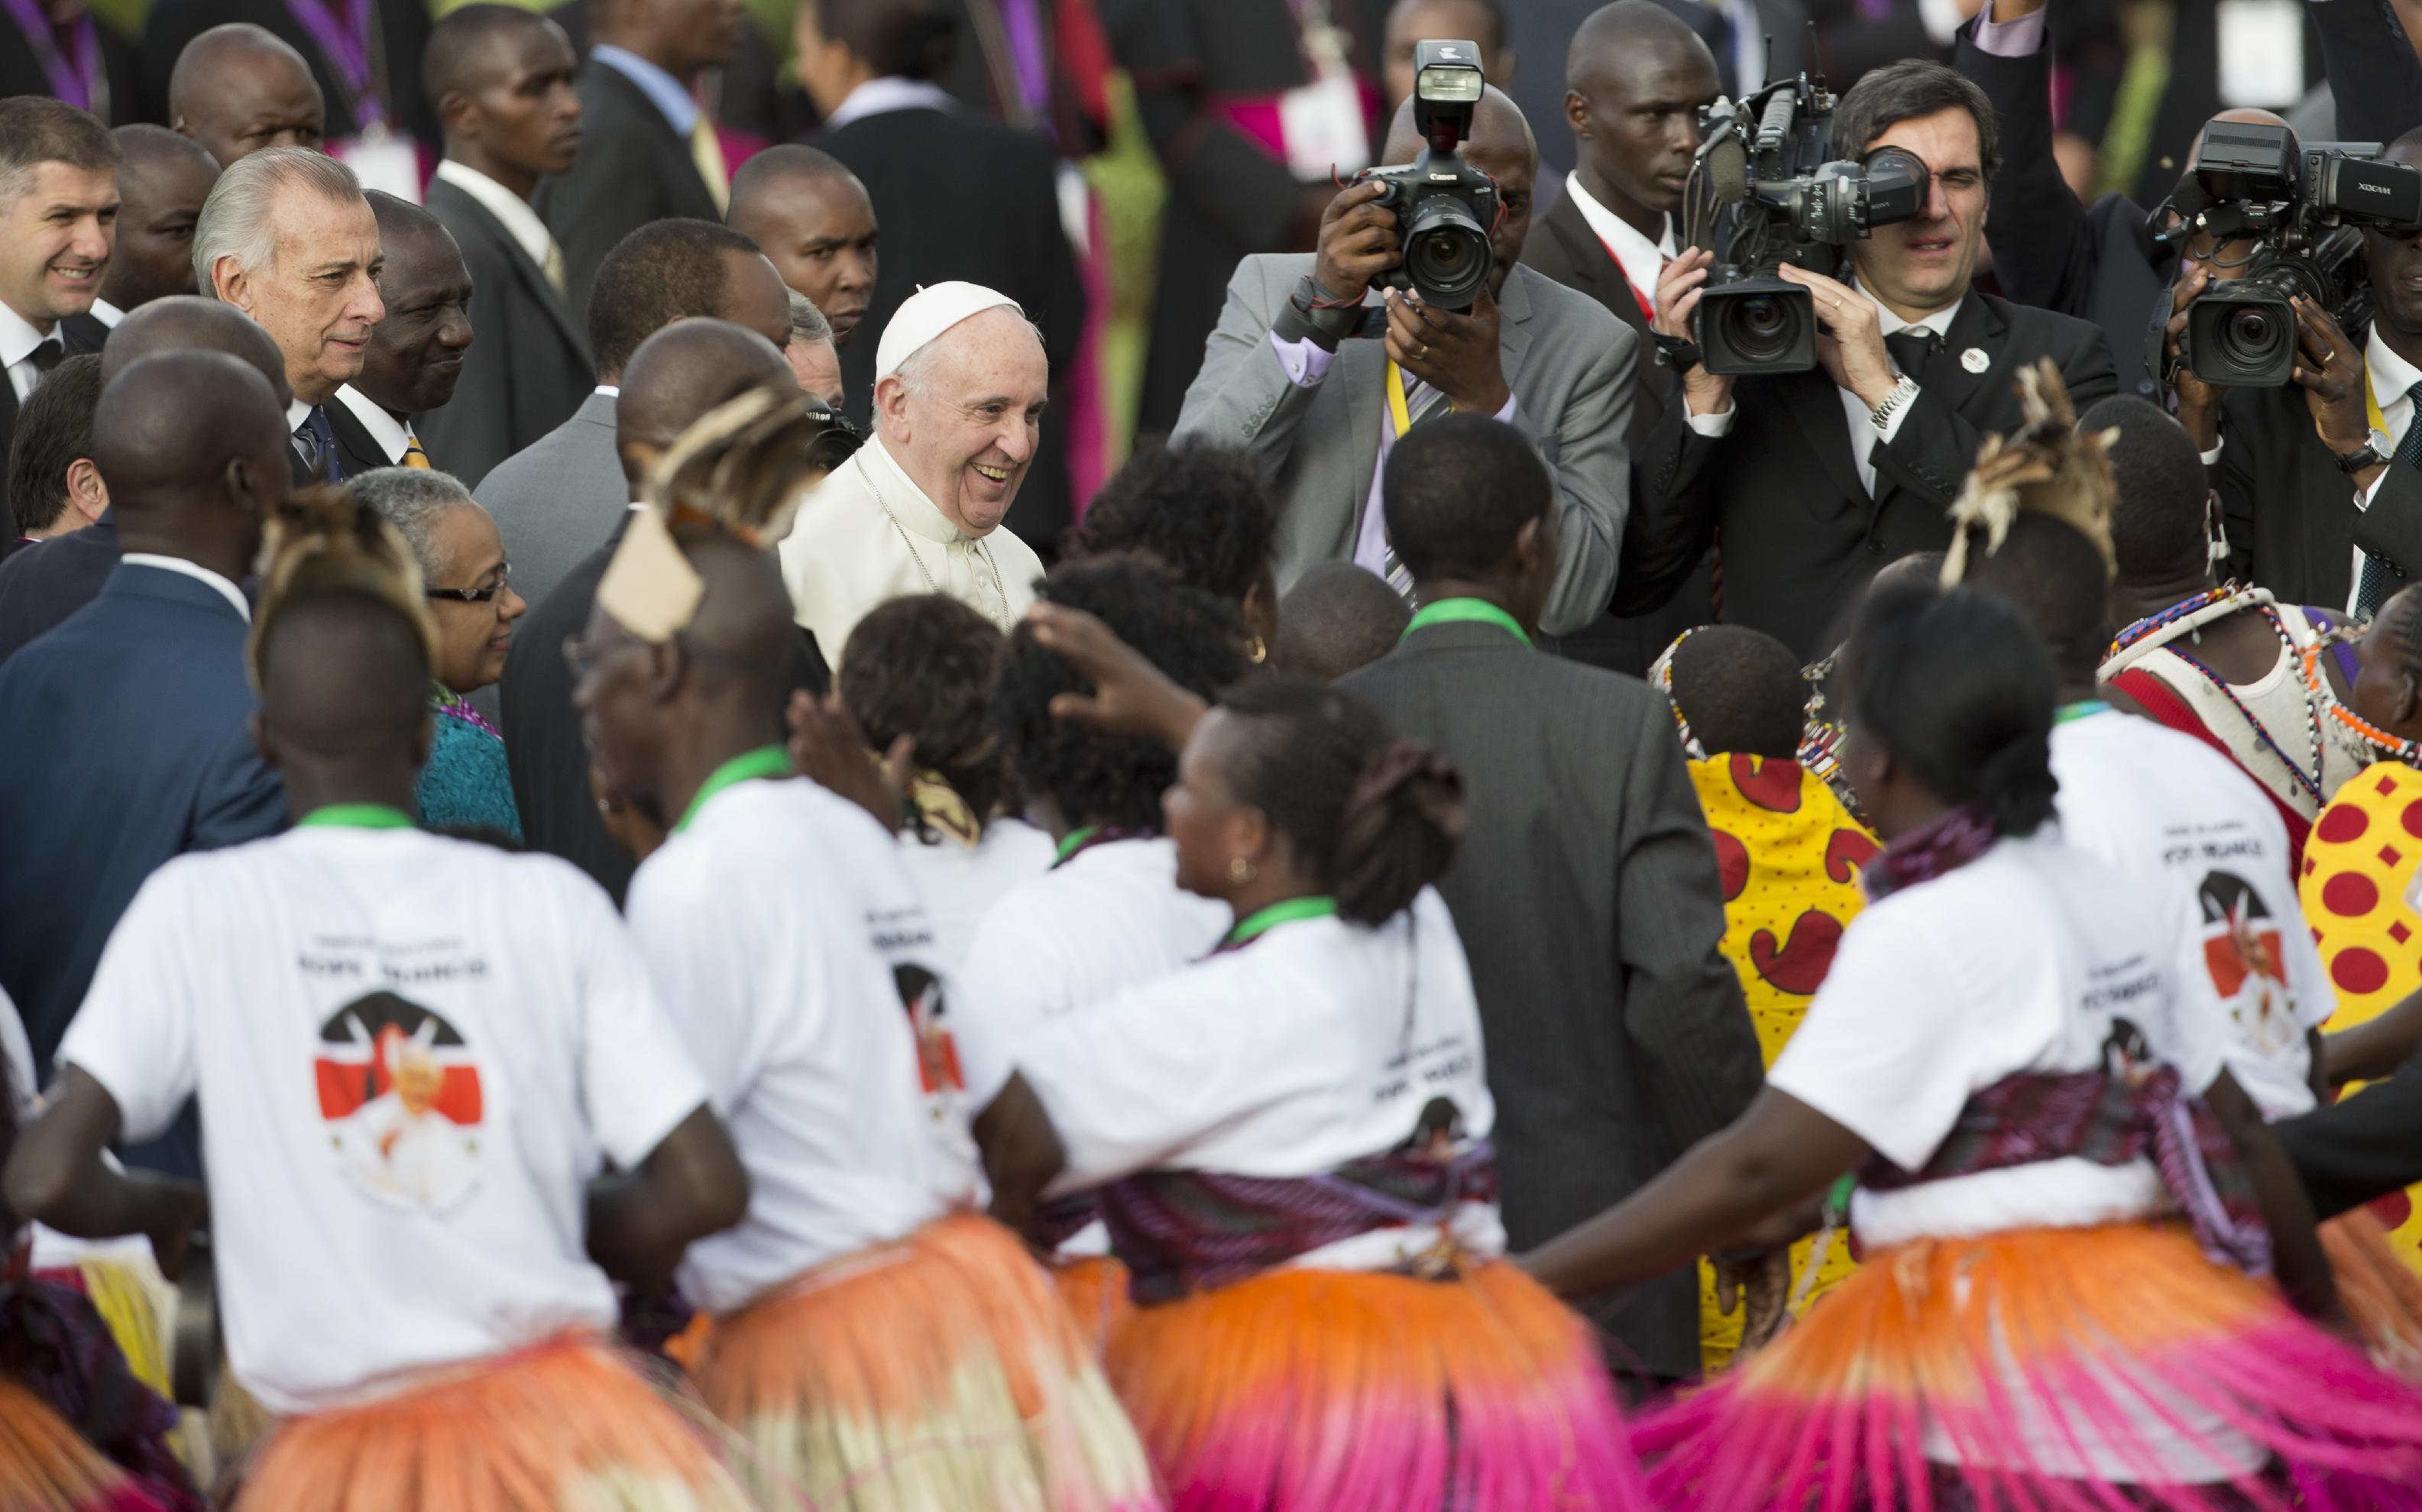 Pope urges Kenyans to work for peace